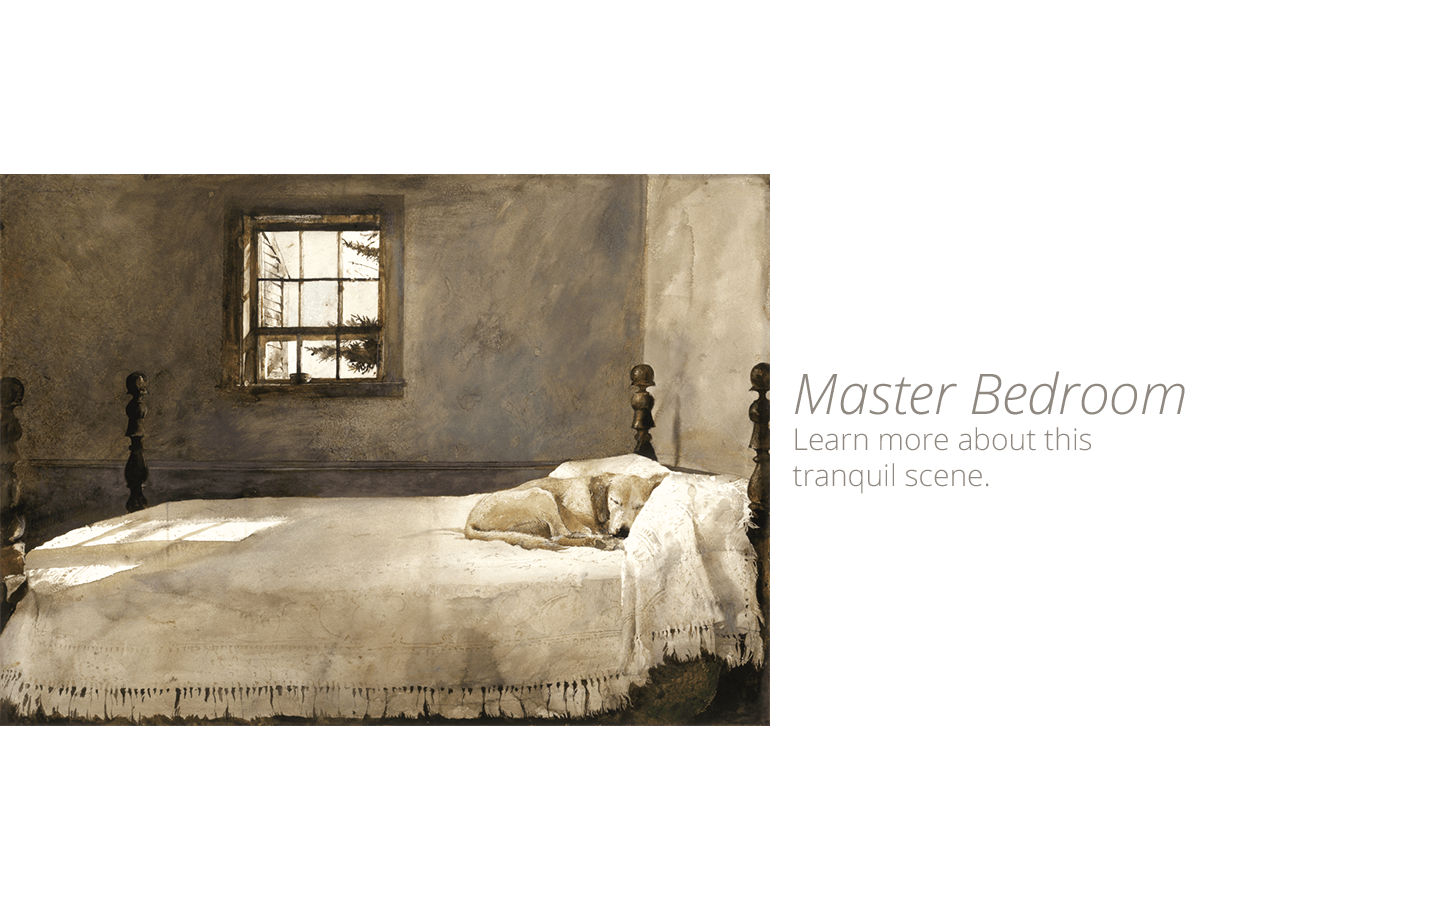 Master Bedroom By Andrew Wyeth Andrew Wyeth Prints Wyeth Print Gallery Home Page